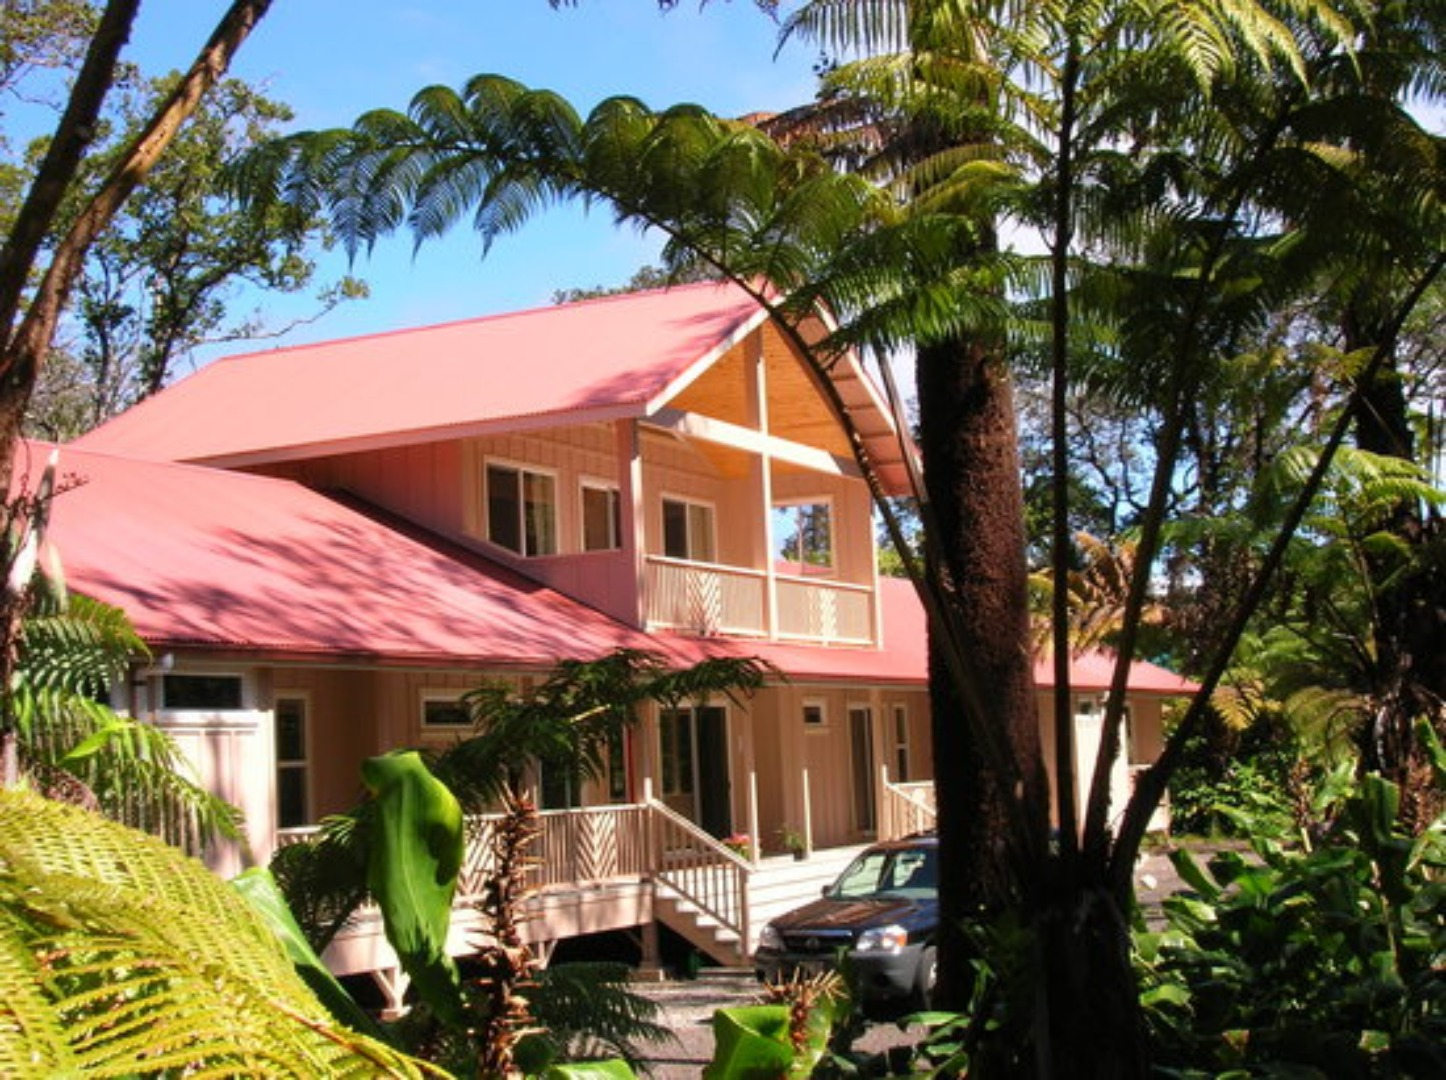 A group of palm trees in front of a house at Volcano Forest Inn.